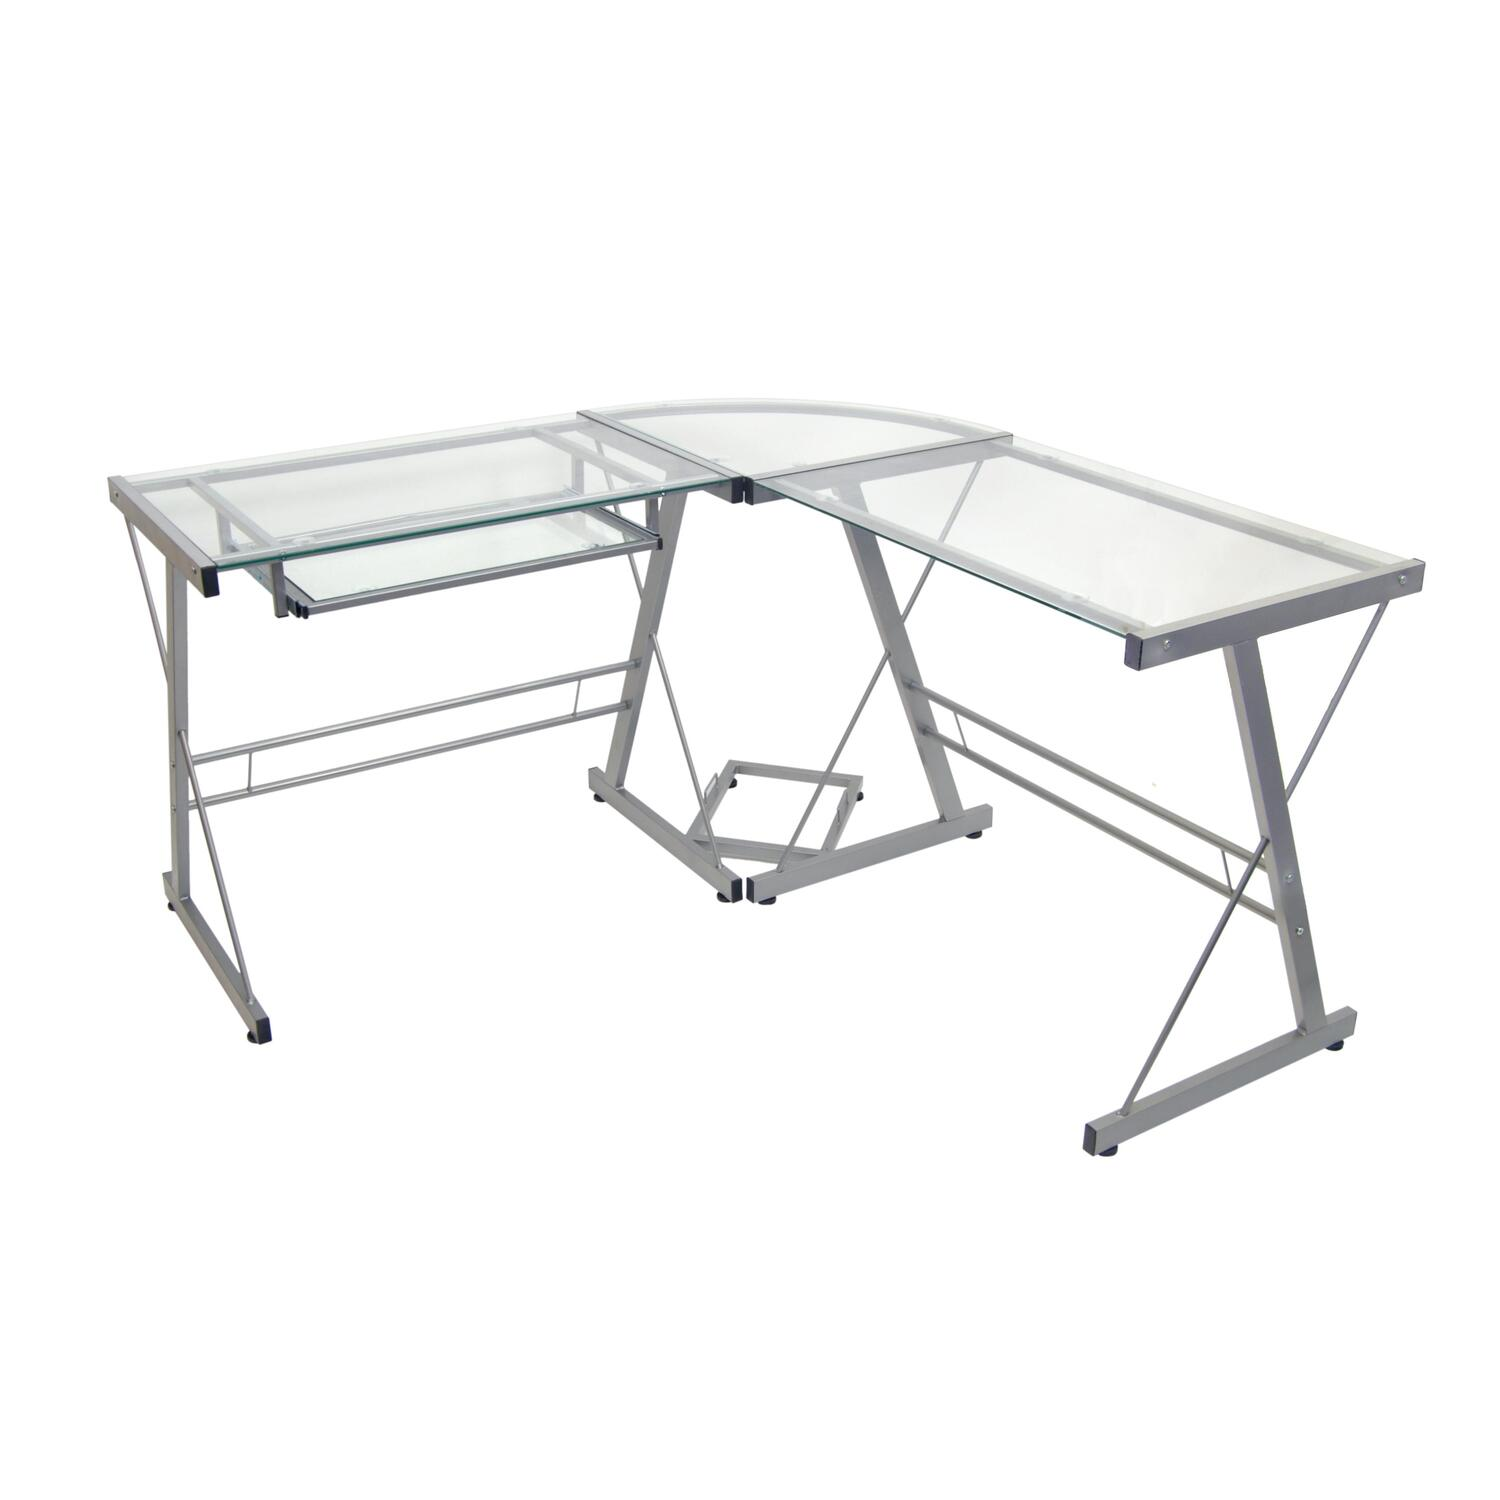 workstation design white desks size l modern small contemporary chair waiting shaped office desk full of furniture reception room curved prices person front